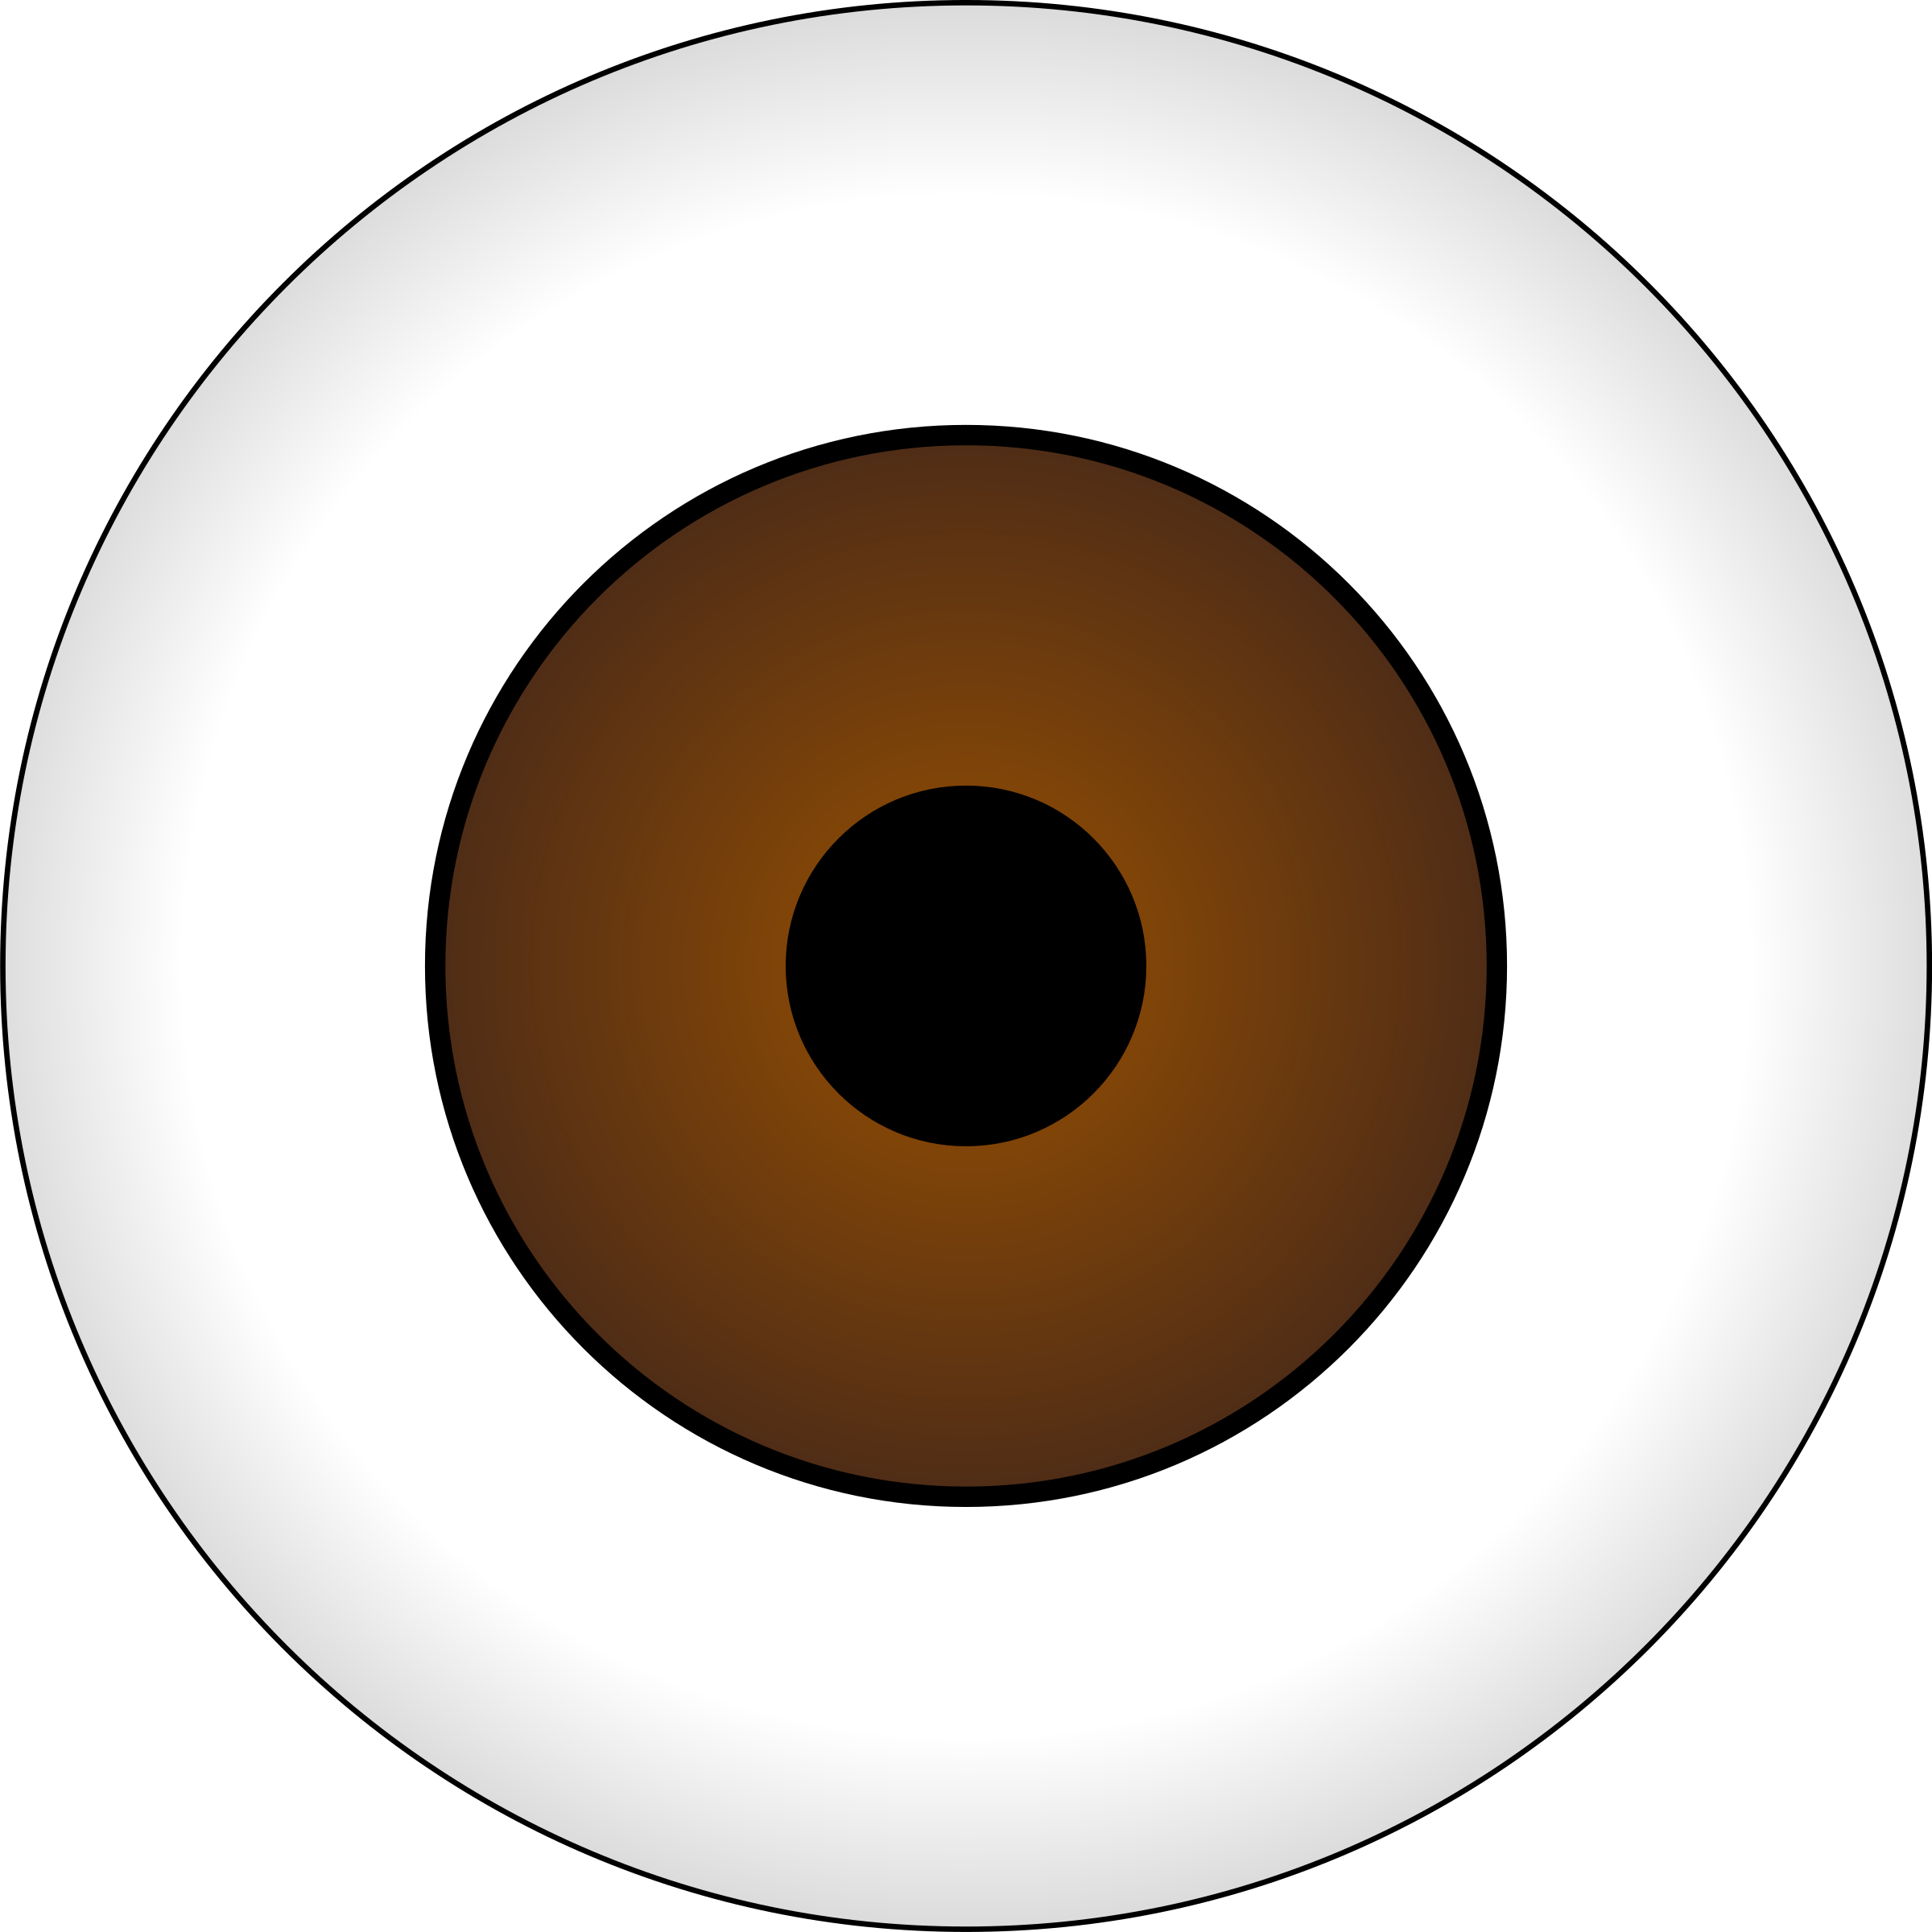 Realistic eye png. Olhos castanhos brown icons